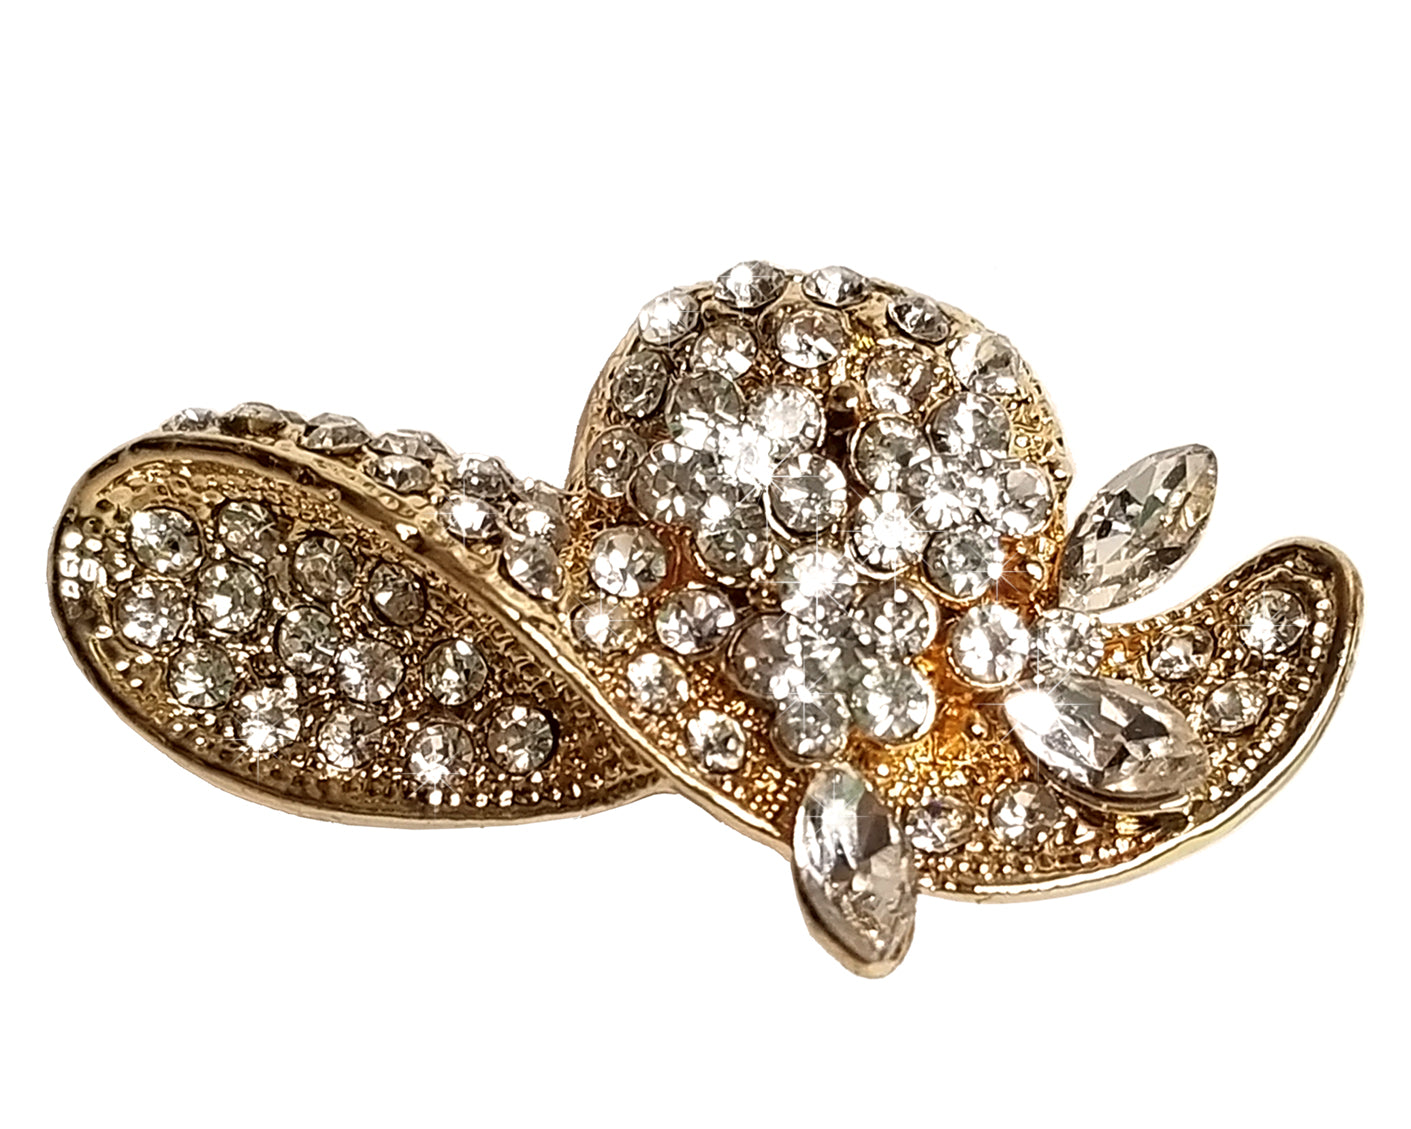 Crystal Rhinestone Brooch Pin - Gold